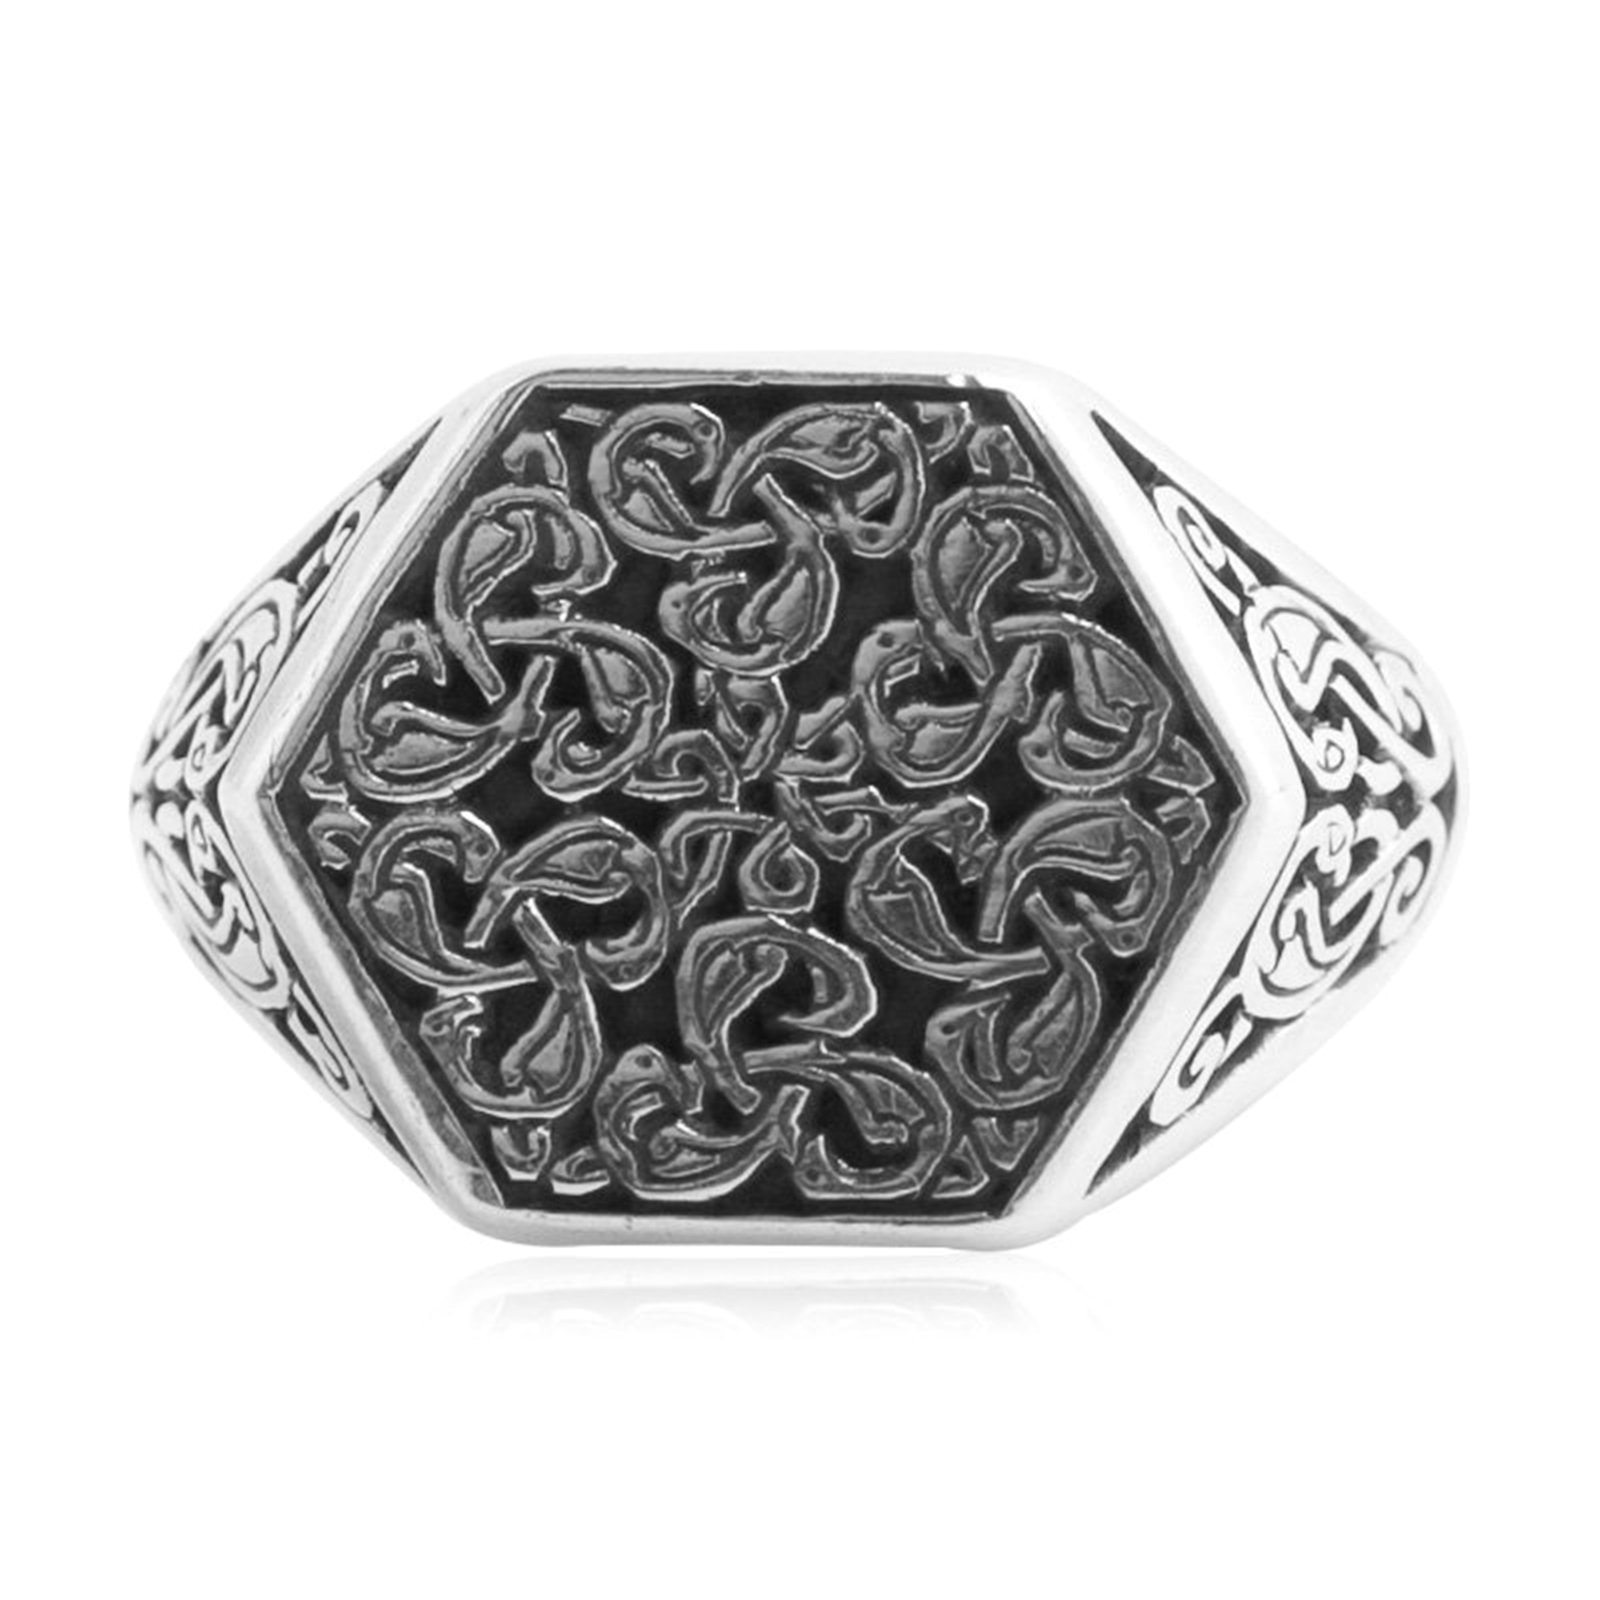 Epinki 925 Sterling Silver Punk Rock Vintage Gothic Flower Vine Hexagon Ring for Men Size 9.5 by Epinki